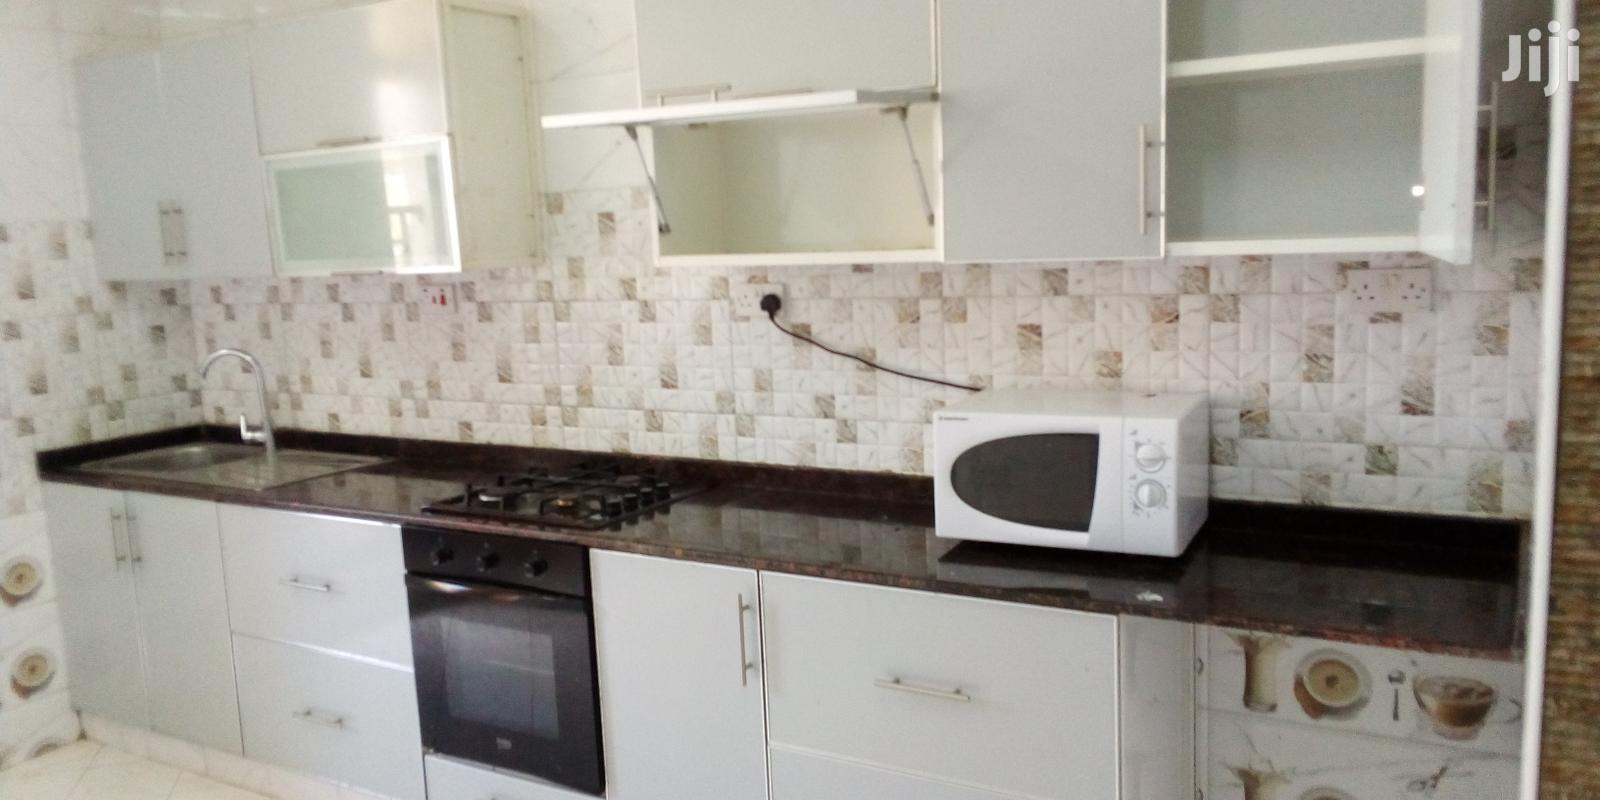 3 Bedrooms Fully Furnished For Rent At Upanga